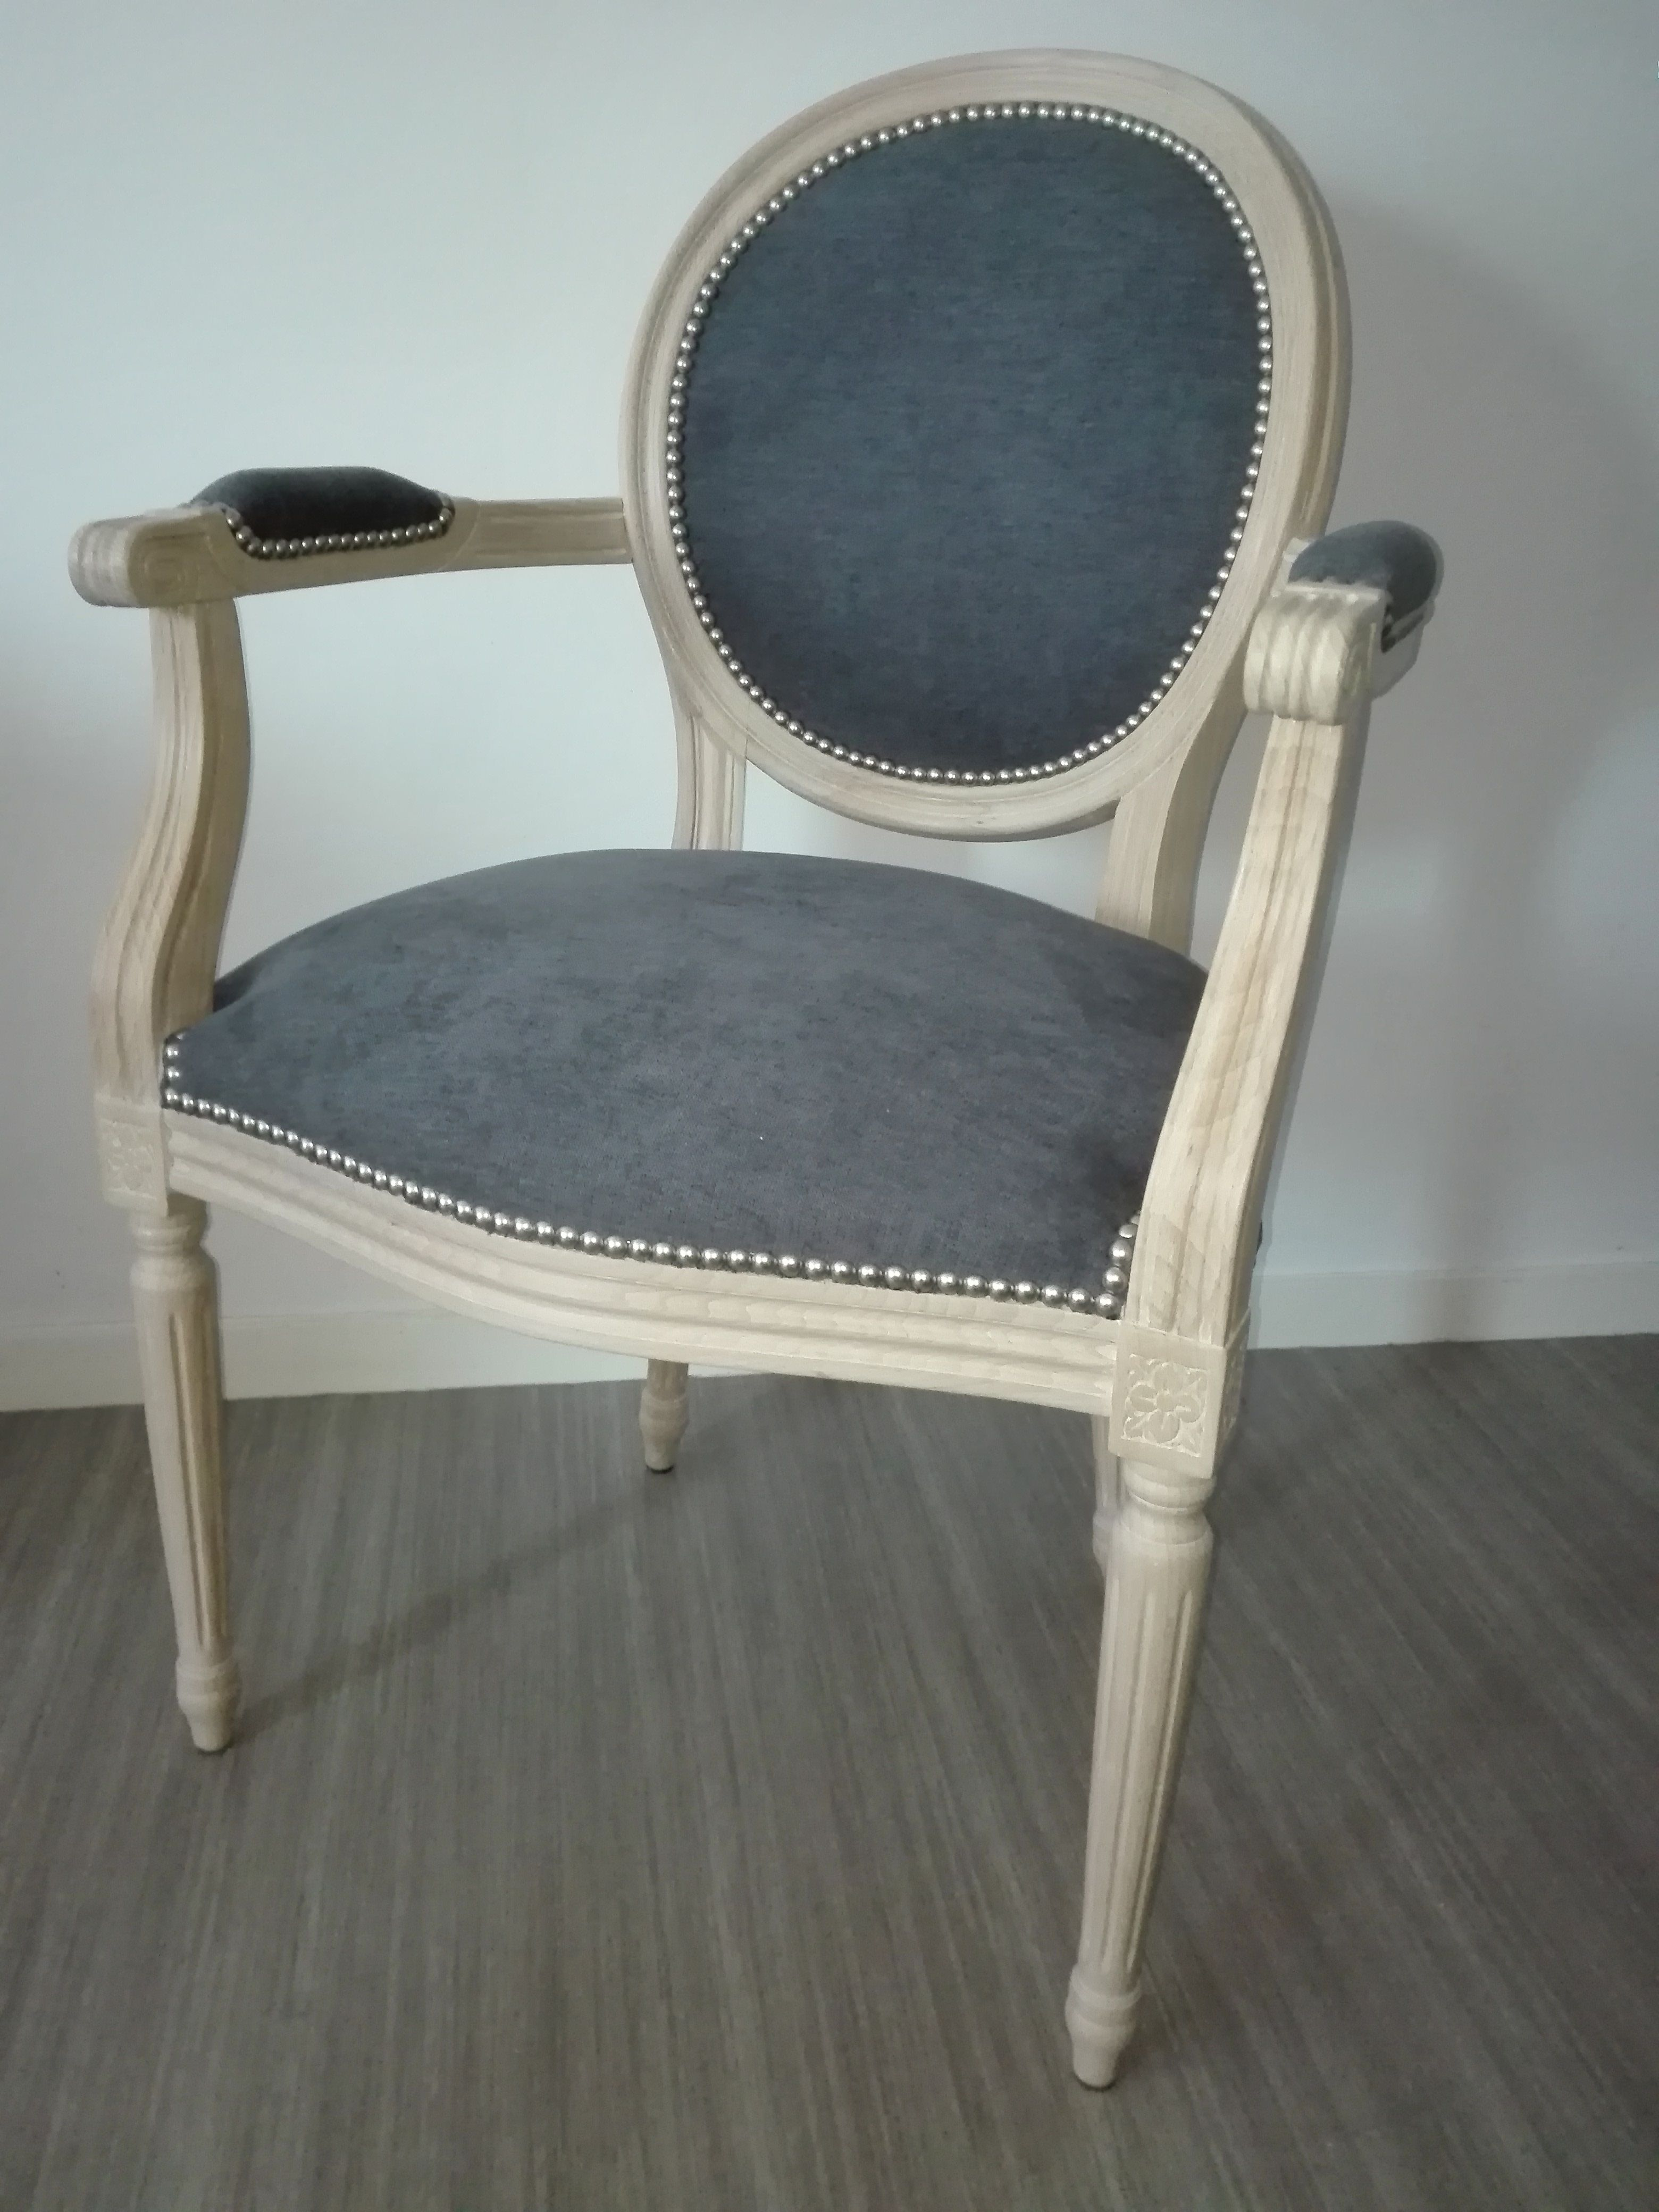 Fauteuil Medaillon Relooke Bois Clair Tissu Velours Anthracite